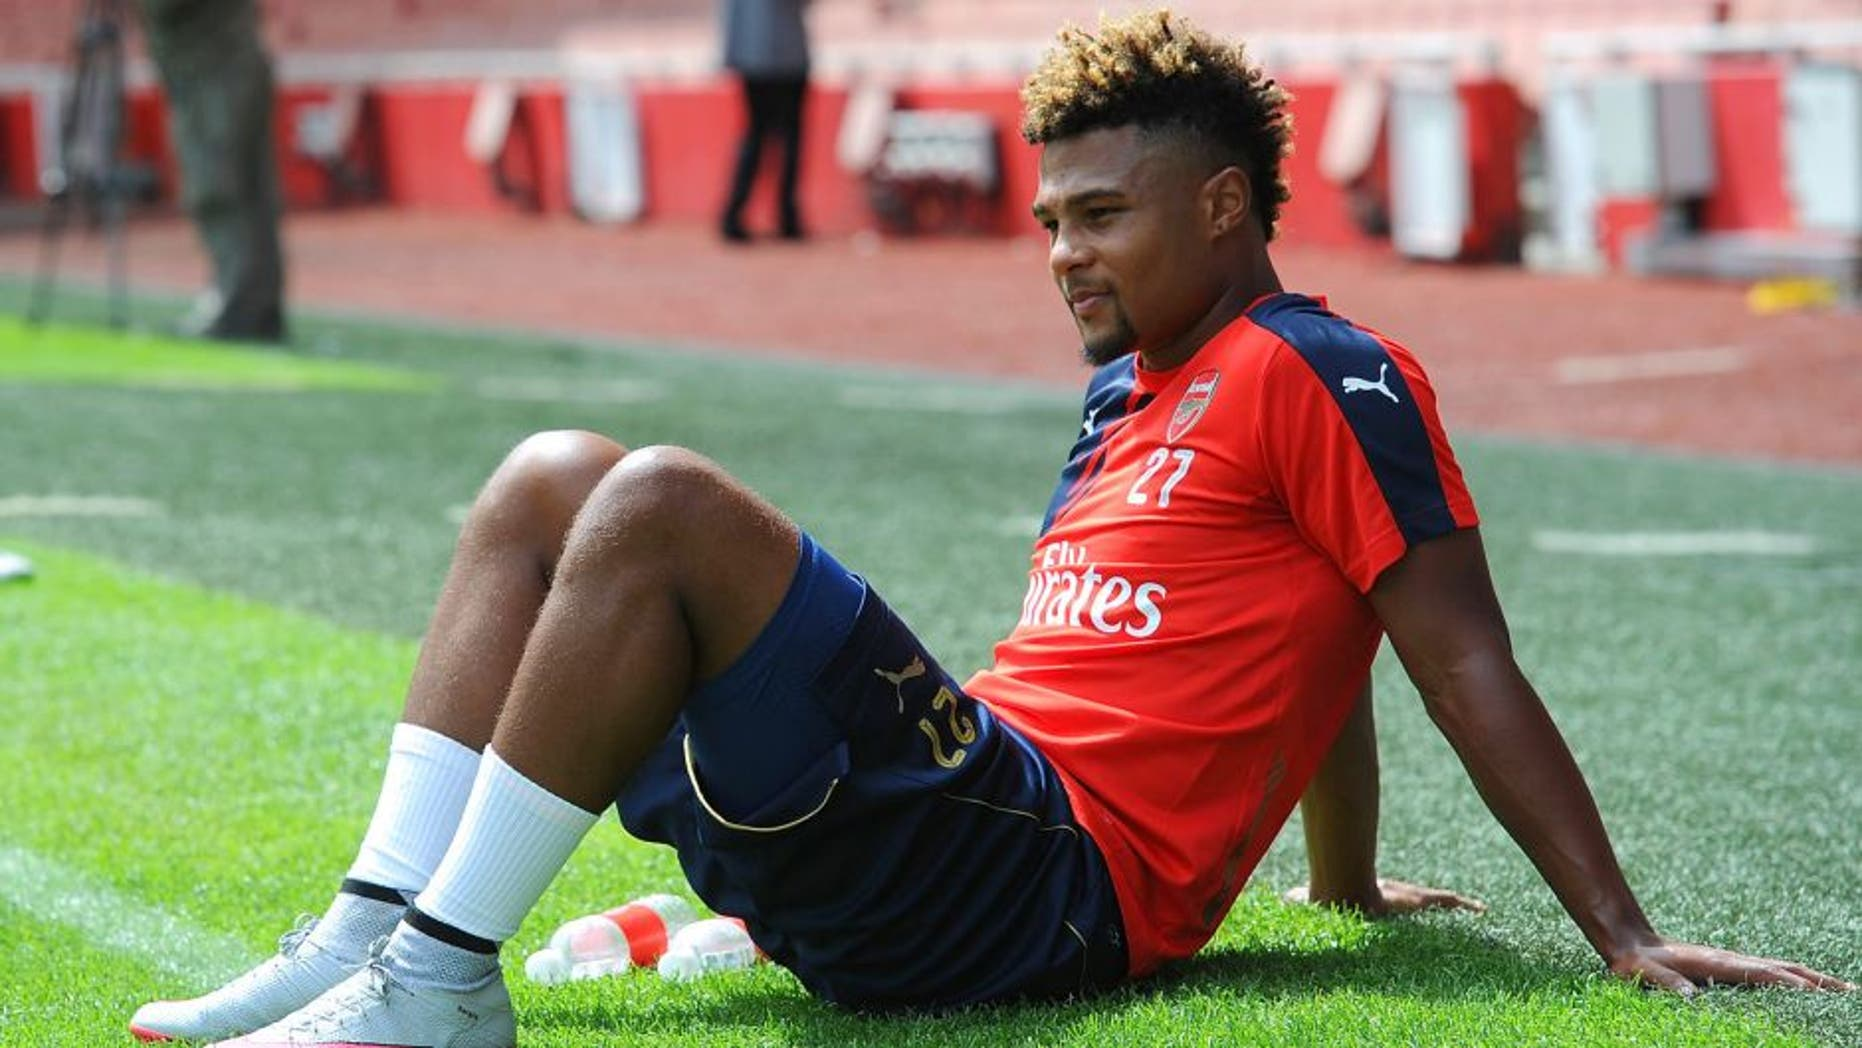 LONDON, ENGLAND - JULY 28: Serge Gnabry of Arsenal during a training session at Emirates Stadium on July 28, 2015 in London, England. (Photo by Stuart MacFarlane/Arsenal FC via Getty Images)